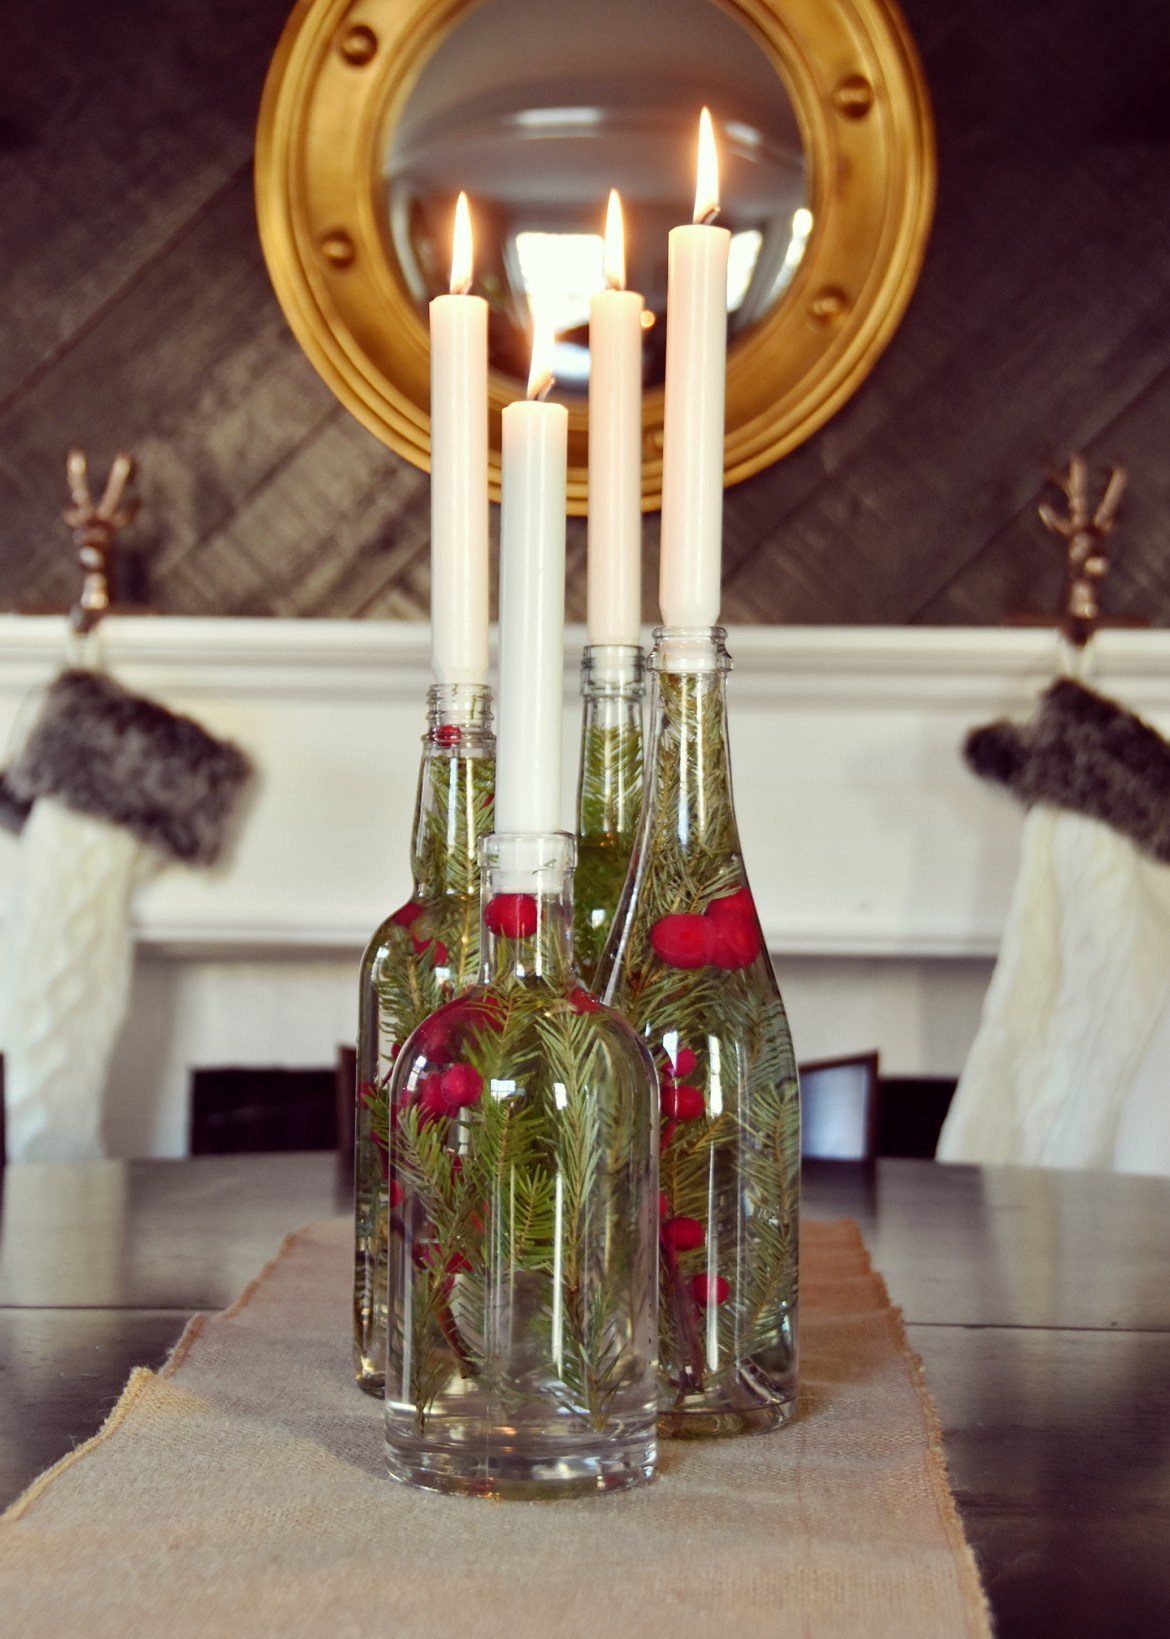 Upcycled Glass Bottle Holiday Centerpiece | Curbly #holiday #upcycled #centerpiece